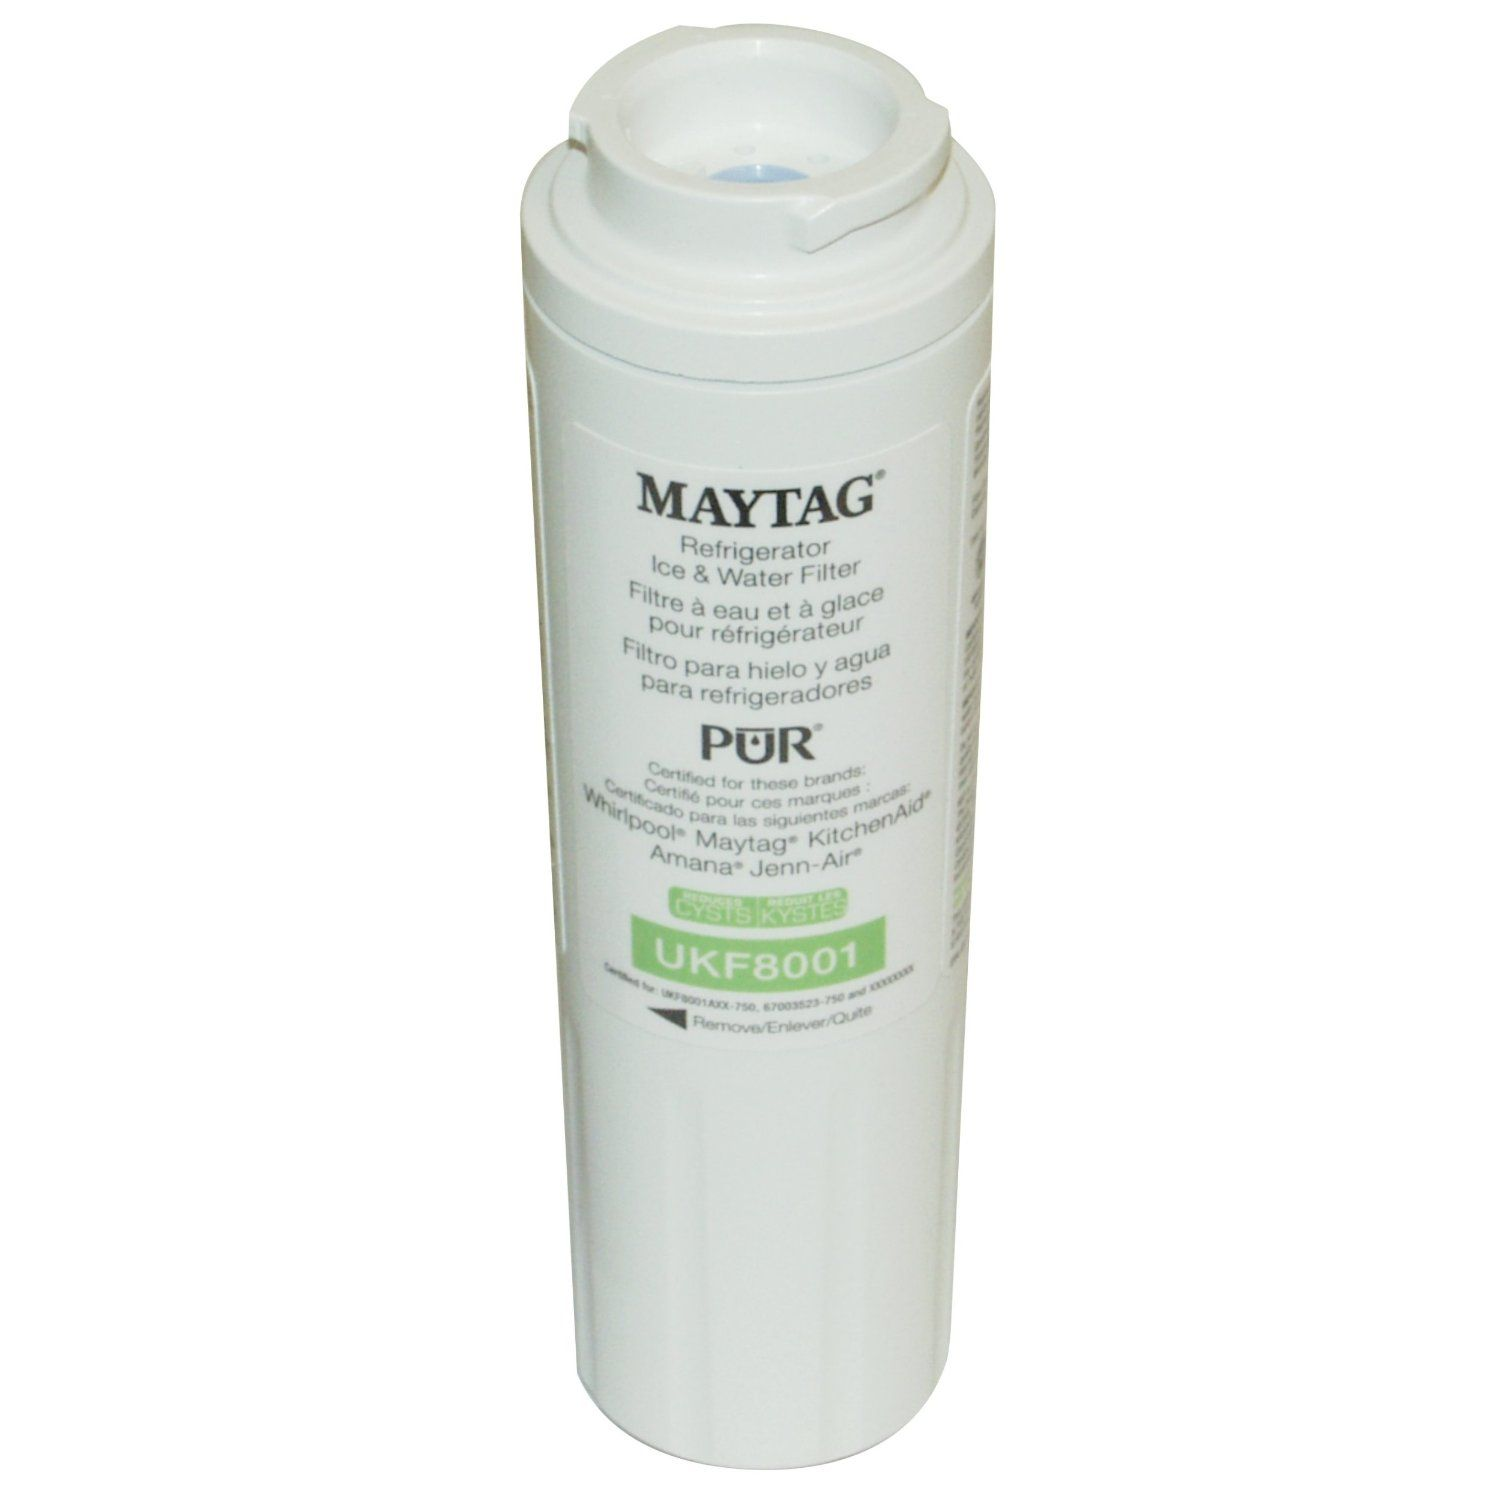 Maytag Ukf8001 Pur Refrigerator Cyst Water Filter 1 Pack